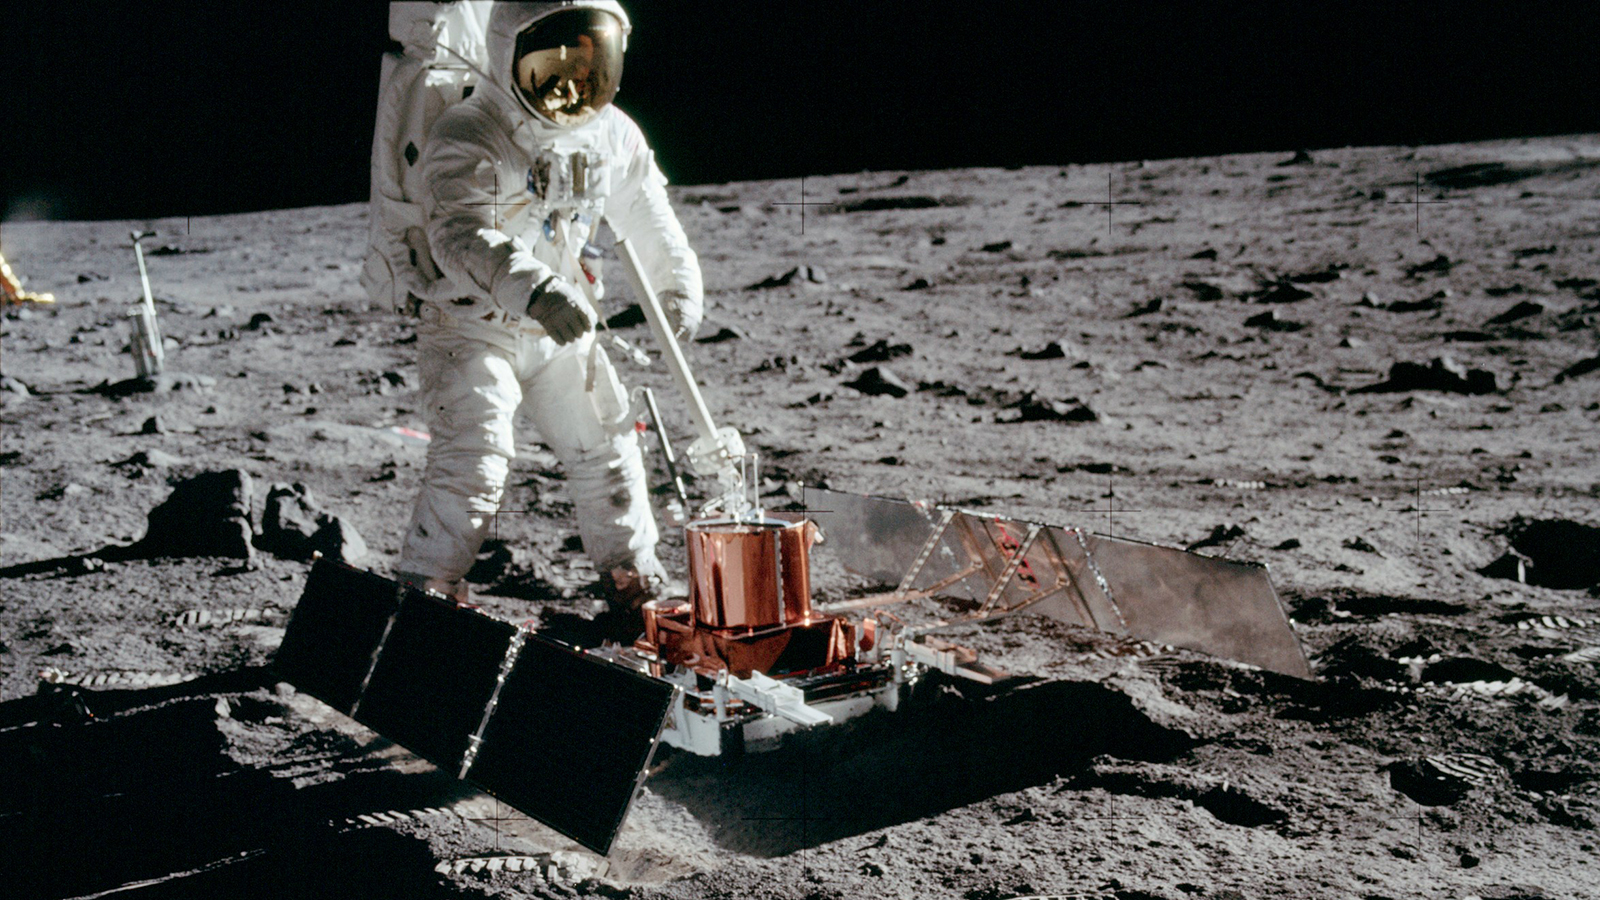 Color image of astronaut with scientific equipment on the moon.